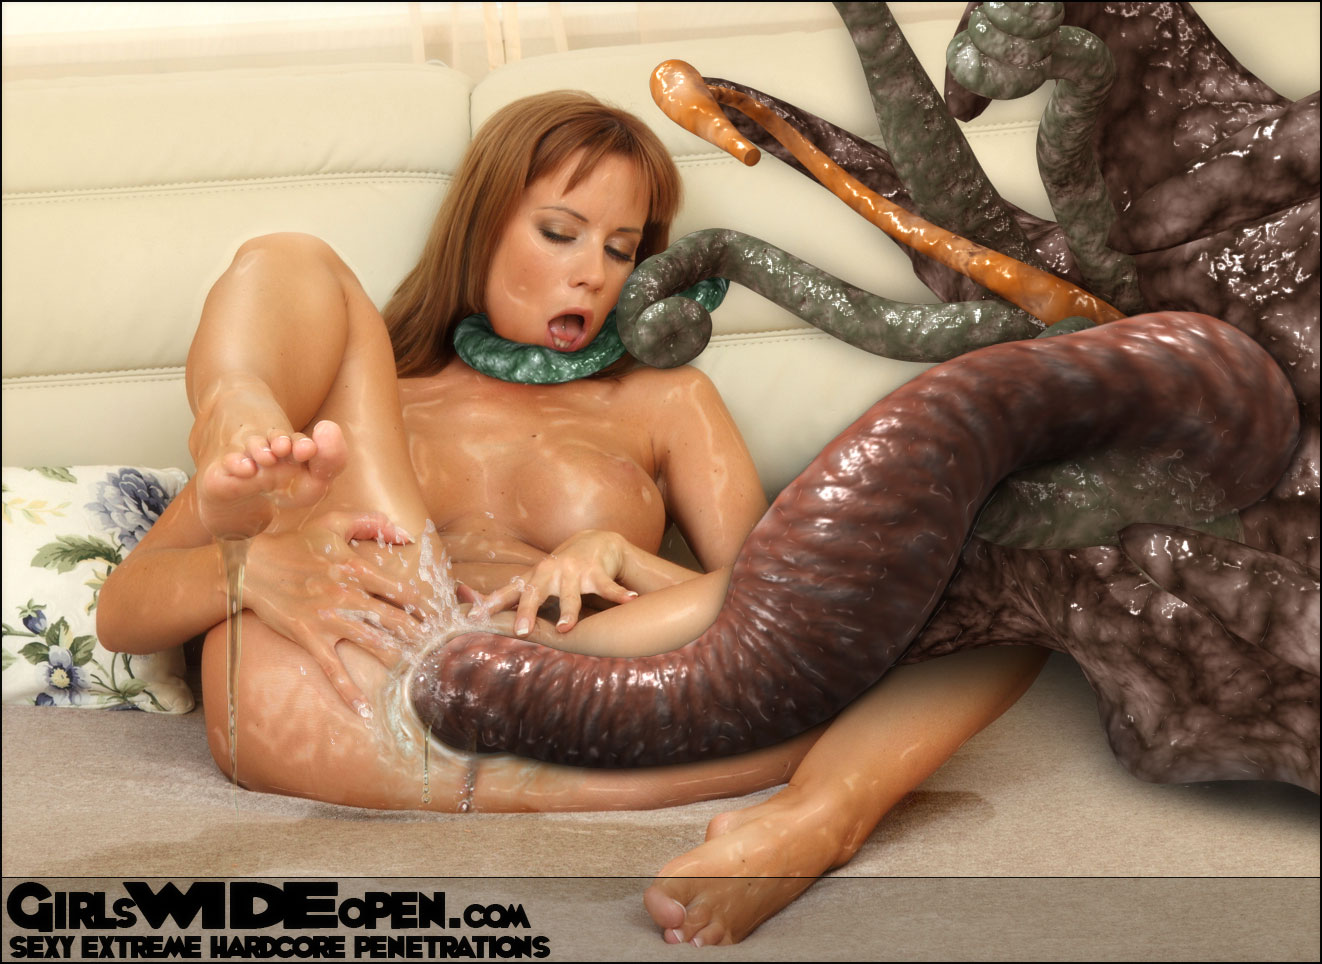 Naked women and monsters sex movie erotic scene